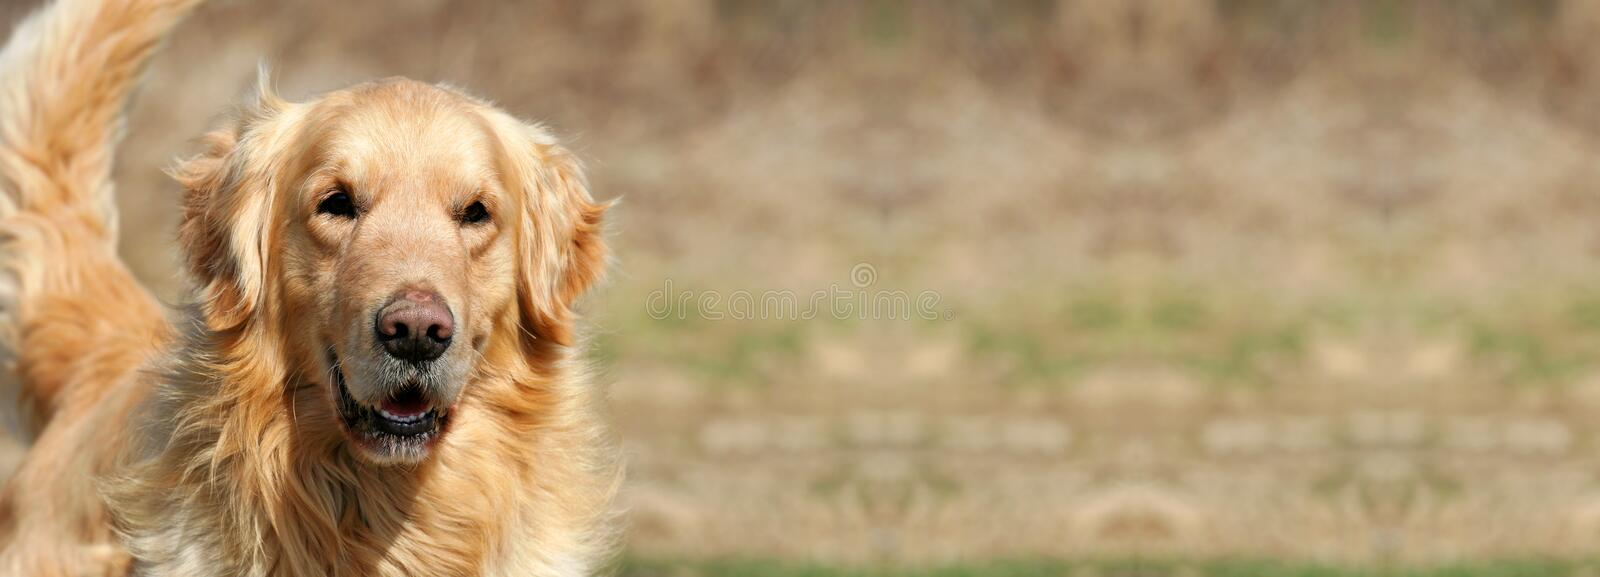 Funny dog banner royalty free stock photography